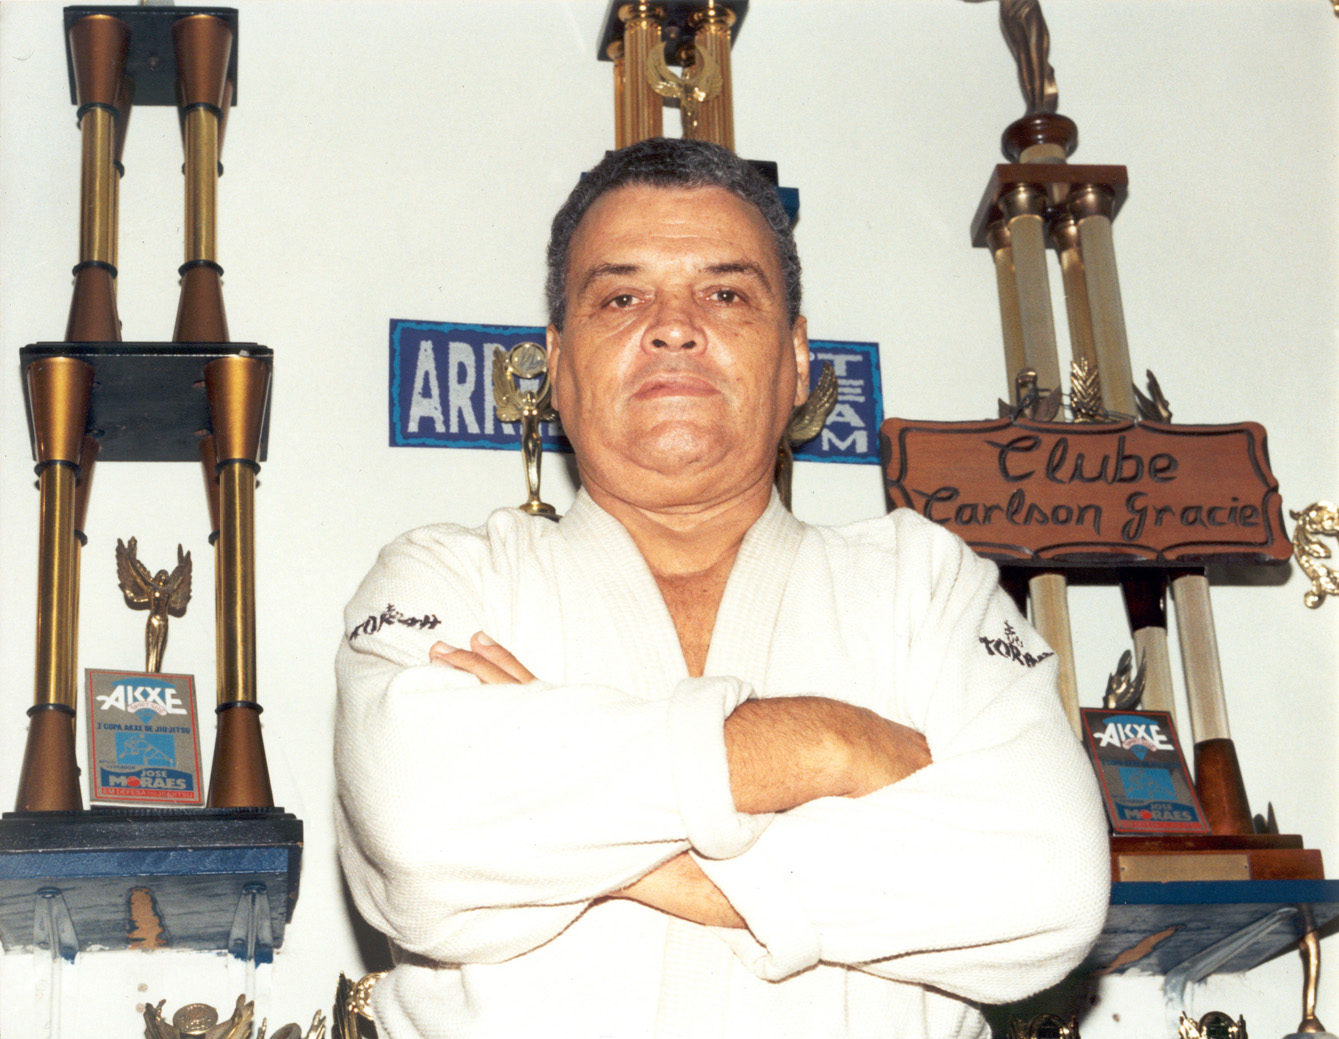 - Considered by many as the most successful Jiu Jitsu academy in the history of the sport, the Carlson Gracie Jiu Jitsu Team was the true juggernaut of competitive BJJ for nearly 3 decades. This school was the flagship for innovation in Jiu Jitsu and lead by one of the most important and influential figures in history, Master Carlson Gracie.Today he continues to be regarded as one of the best representatives of Brazilian Jiu Jitsu both as a competitor and a coach. His legacy will live on for many years as it is the focus and foundation of BJJ Revolution.